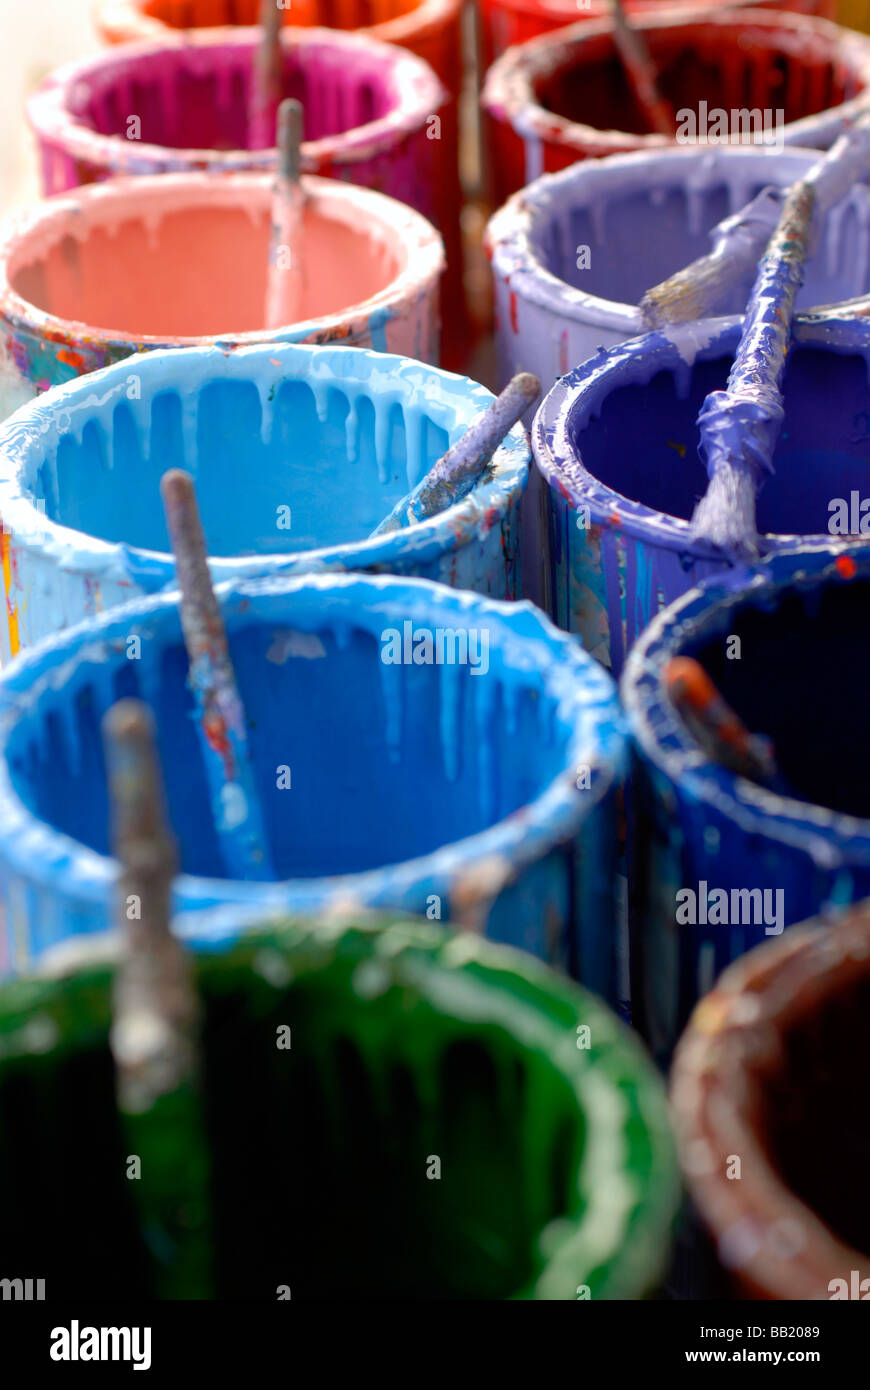 Colour Cans - Stock Image